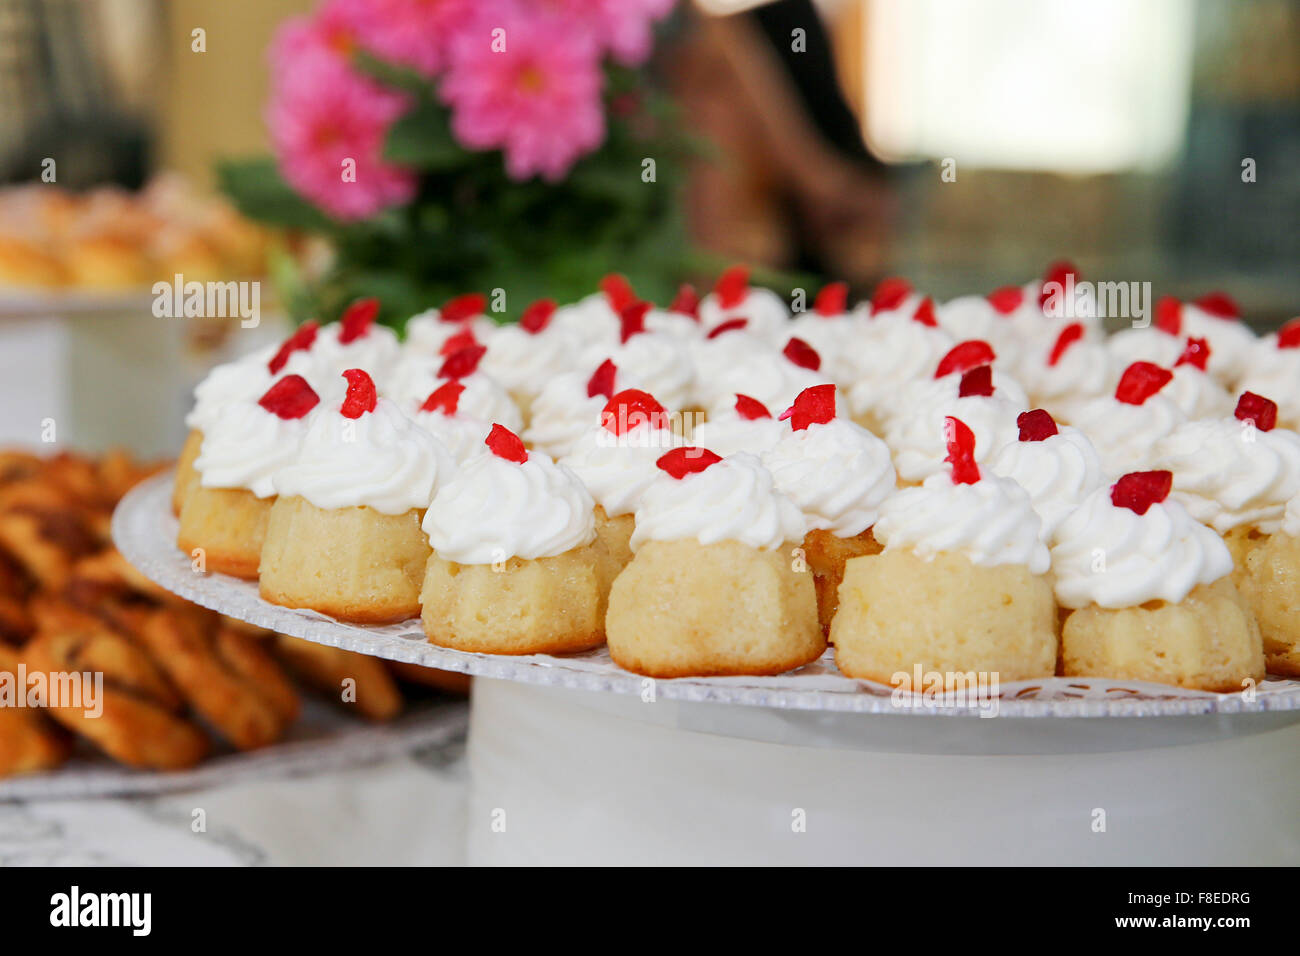 rum baba (or baba au rhum) a small yeast cake saturated in rum, and filled with whipped cream or pastry cream - Stock Image